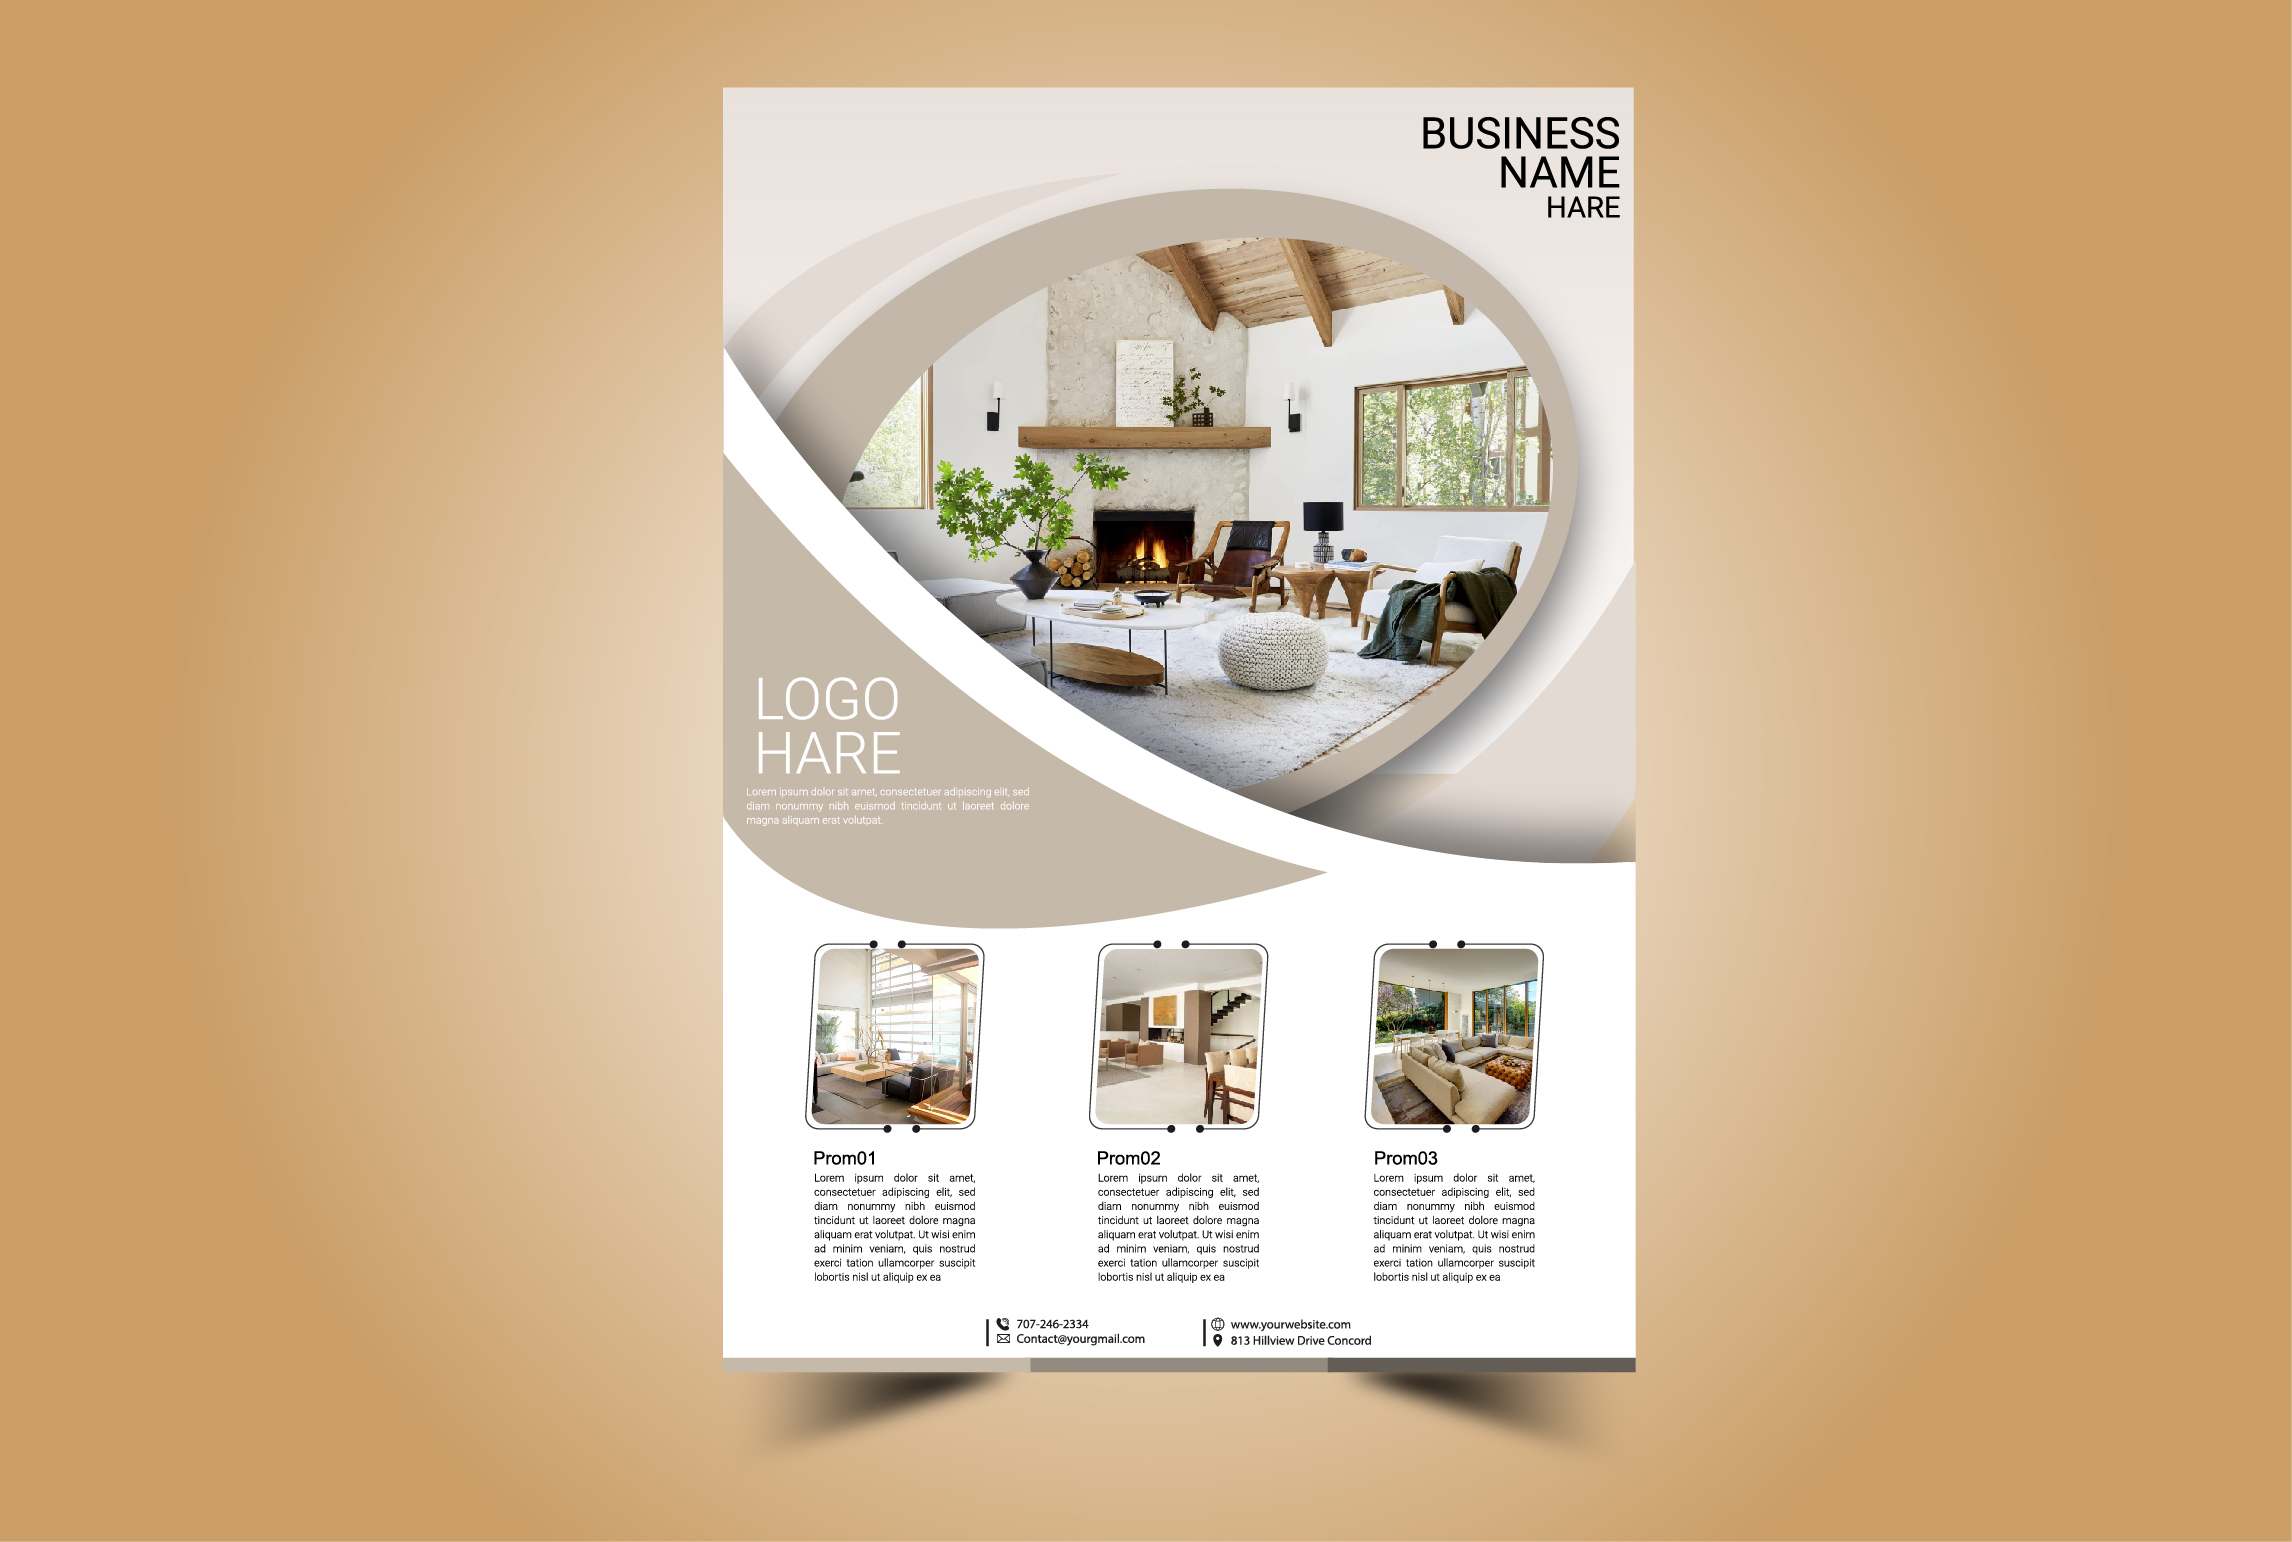 I will create a professional flyer or brochure design within 12 hours